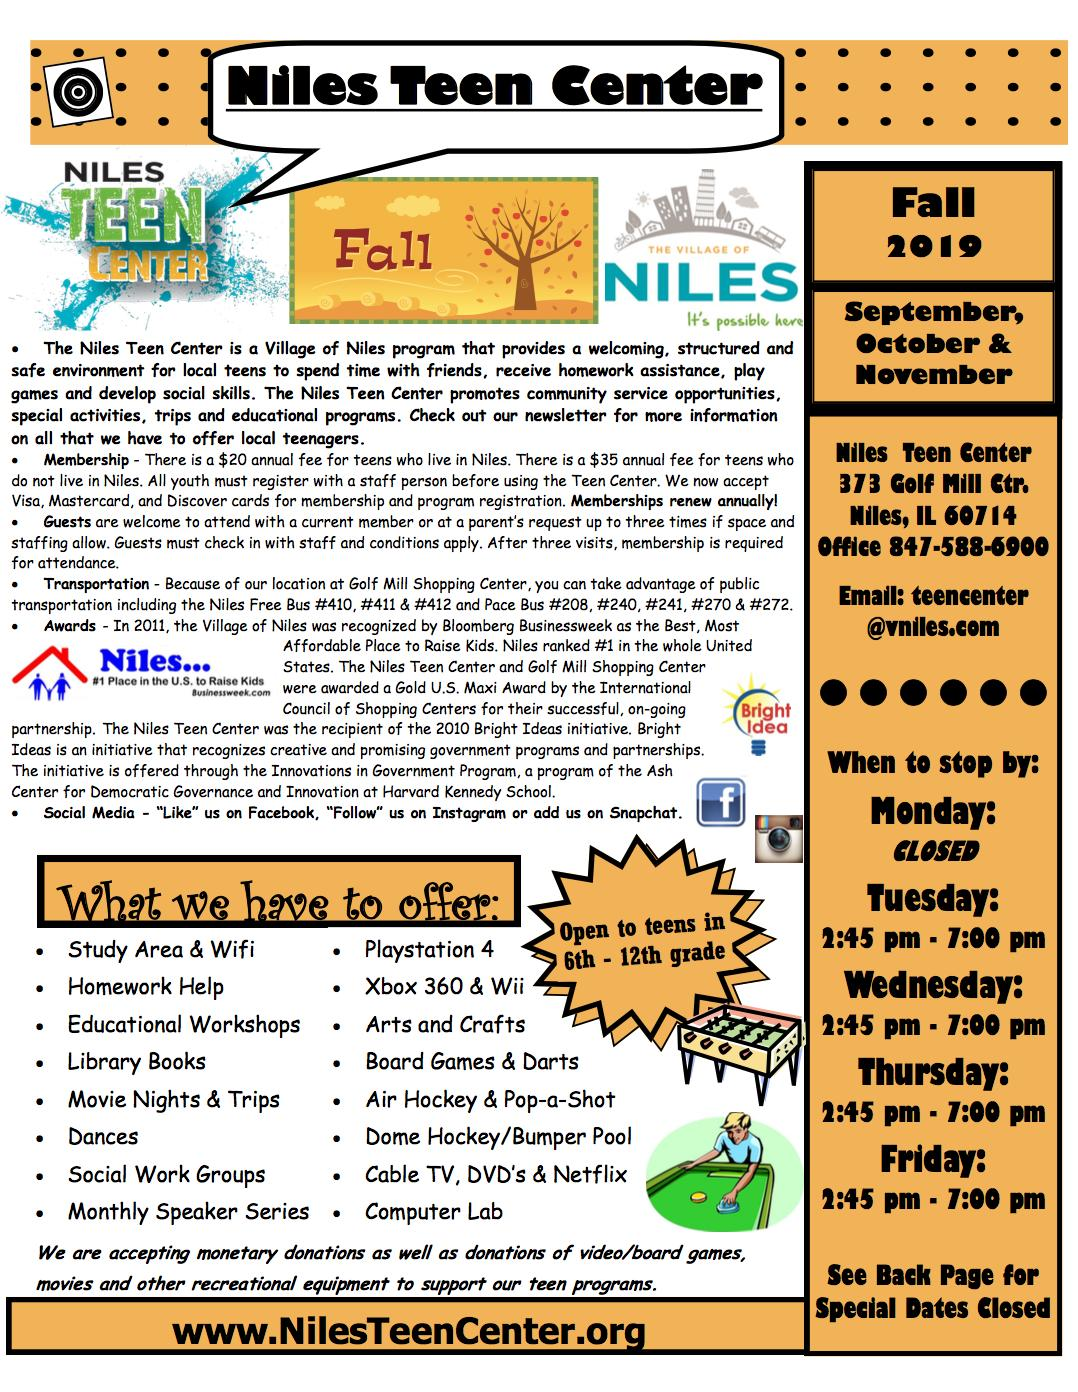 Niles Teen Center Fall Breakout